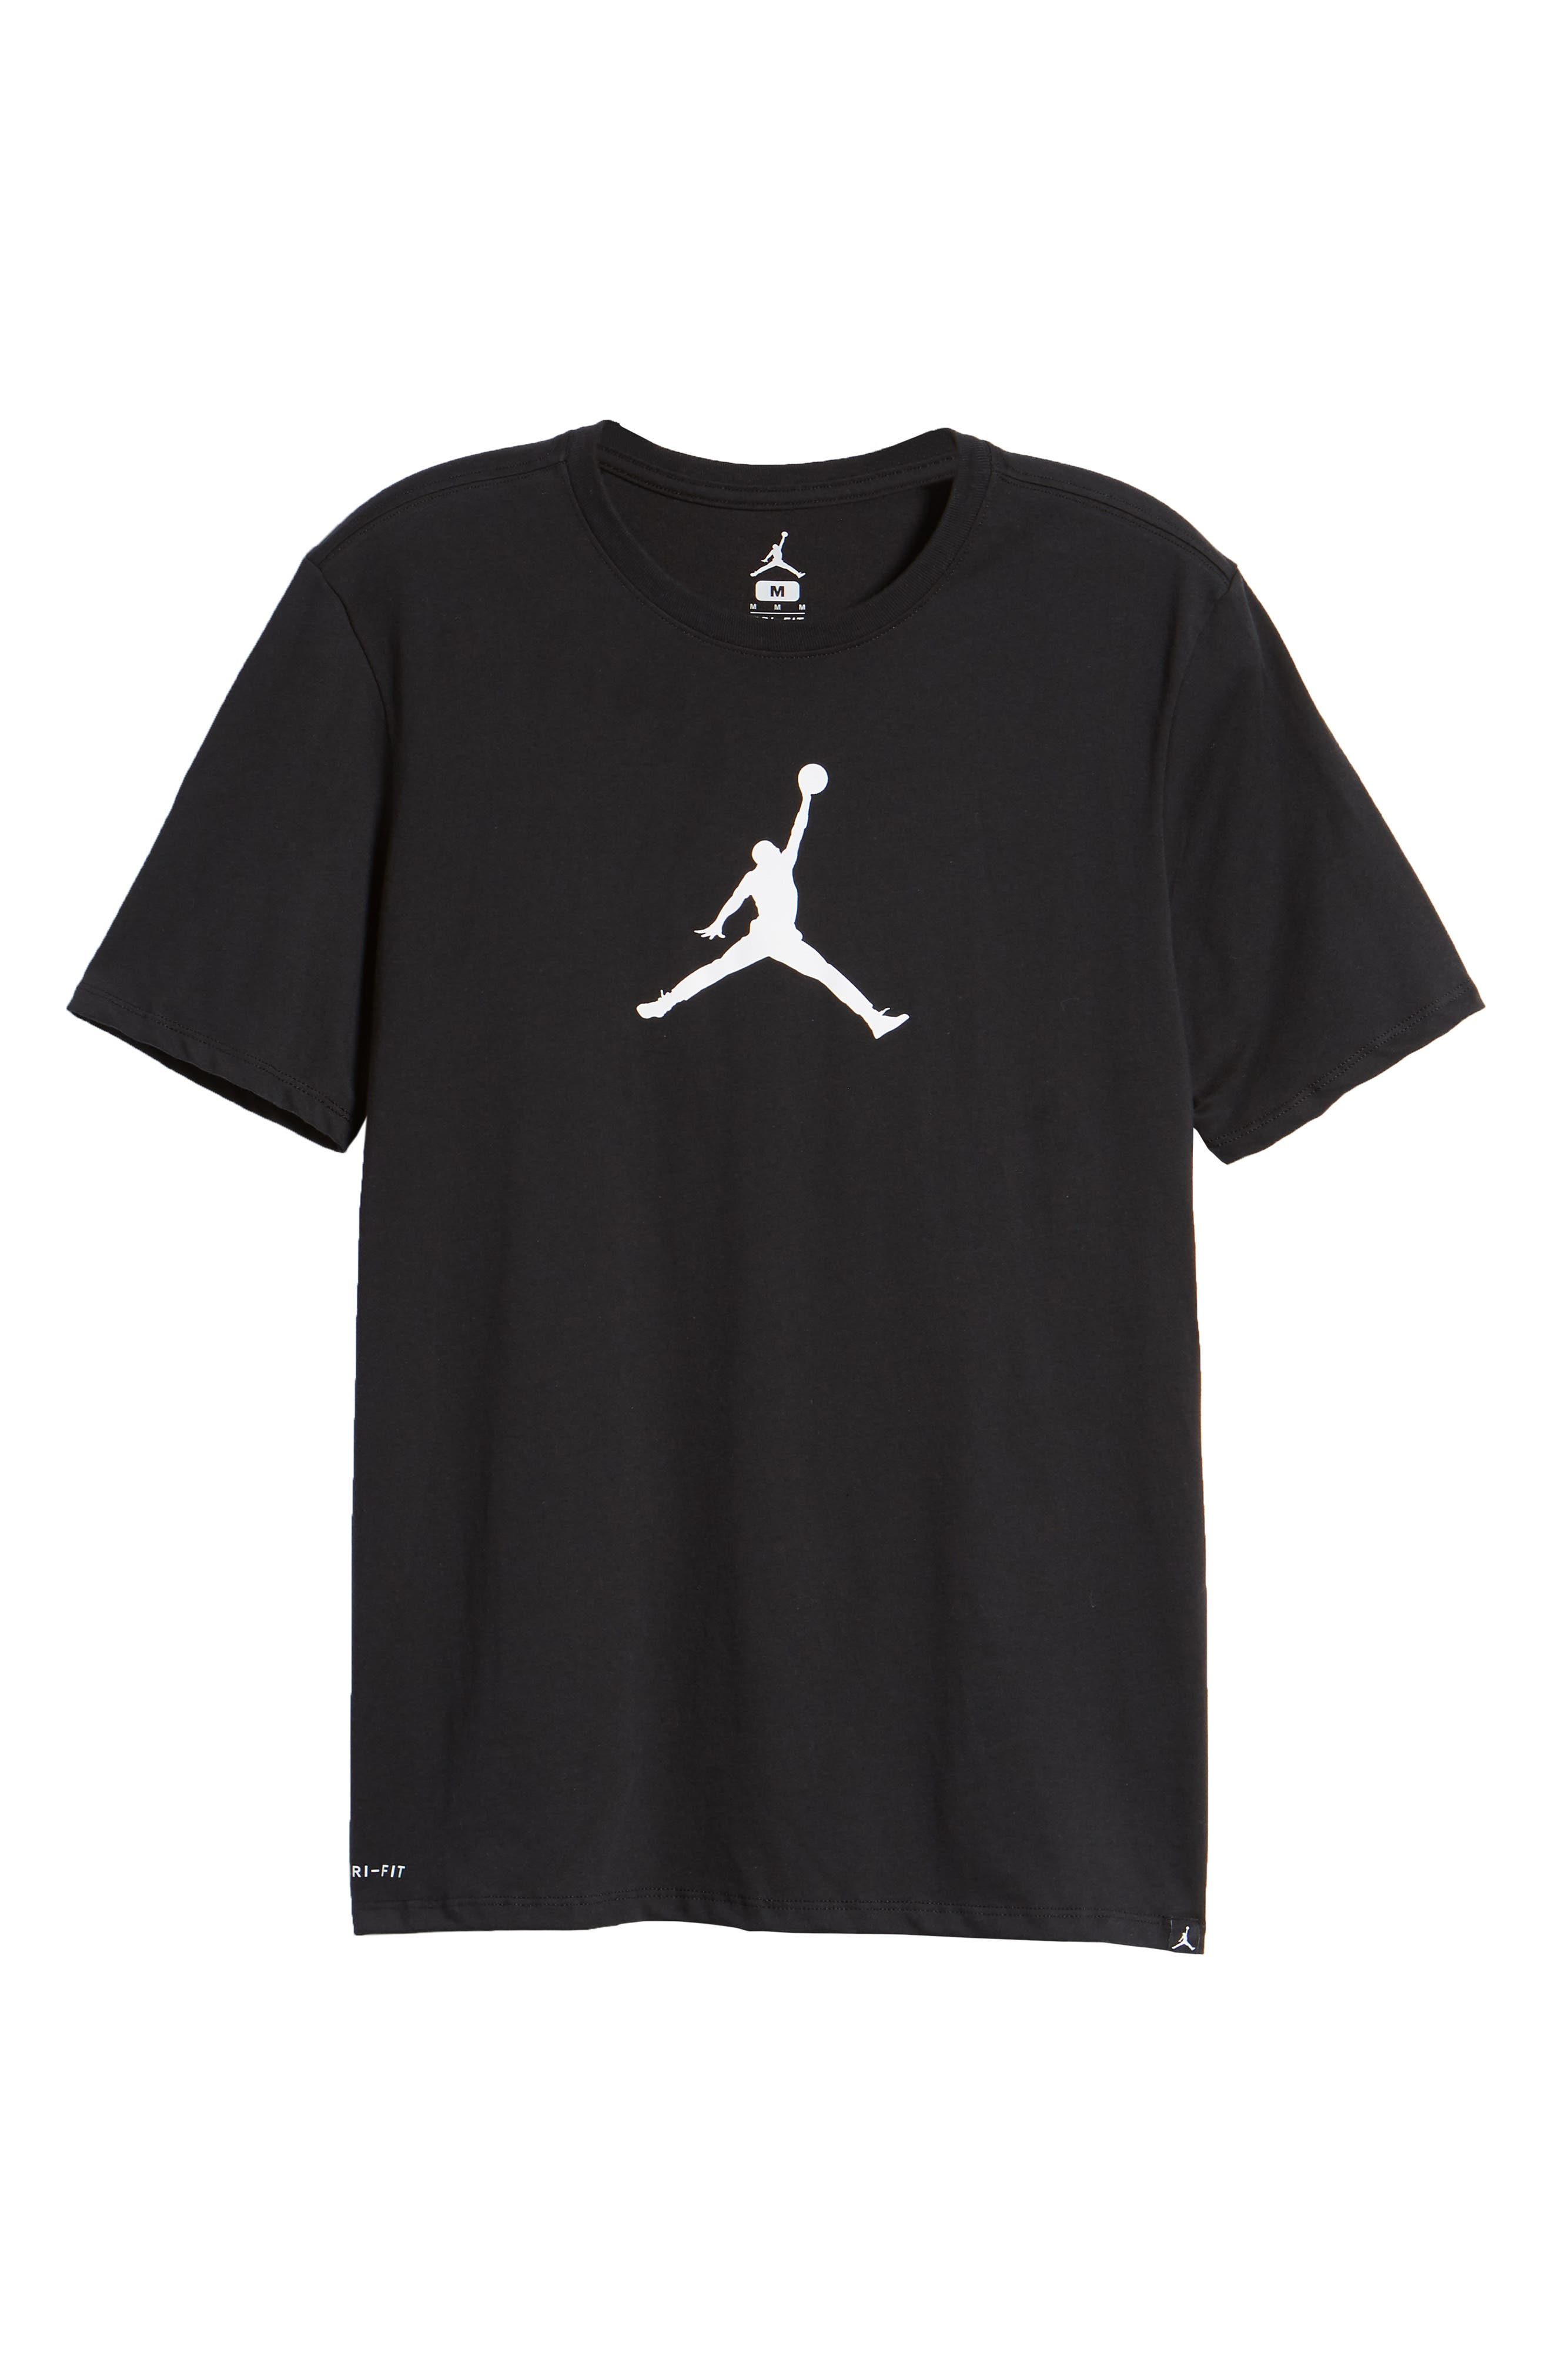 Iconic Jumpman Graphic T-Shirt,                             Alternate thumbnail 6, color,                             010